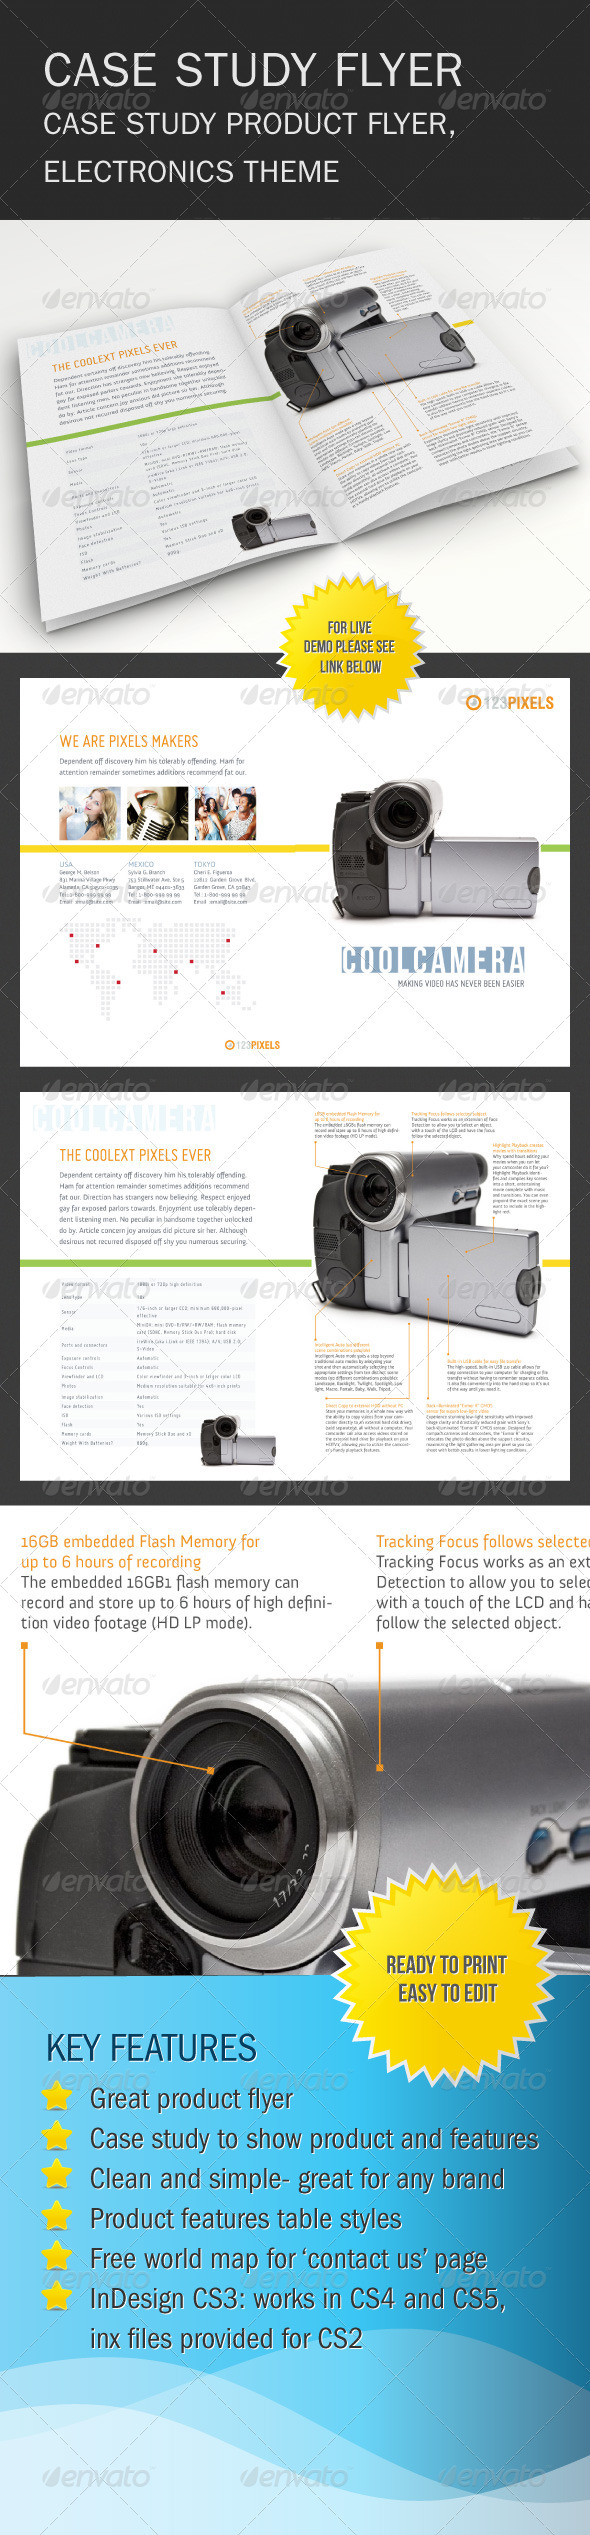 Product Case Study Flyer - Commerce Flyers